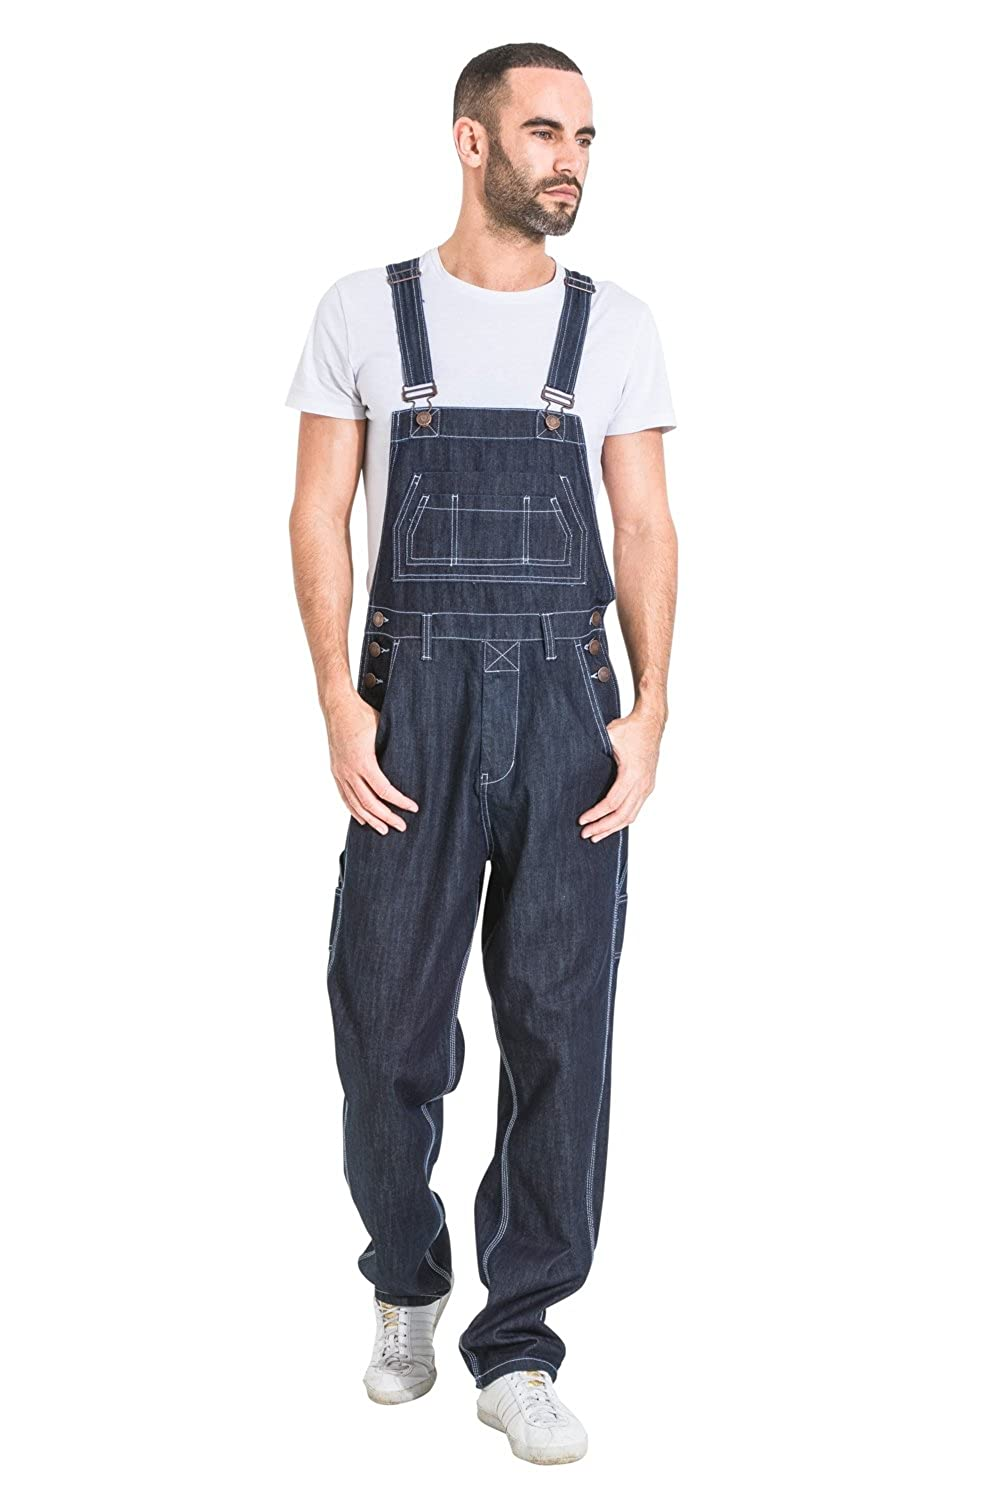 USKEES Men's Loose Fit Denim Dungarees - Dark Blue Value Overalls Cheap Dungarees MENSVALUEDARKBLUE G8 One